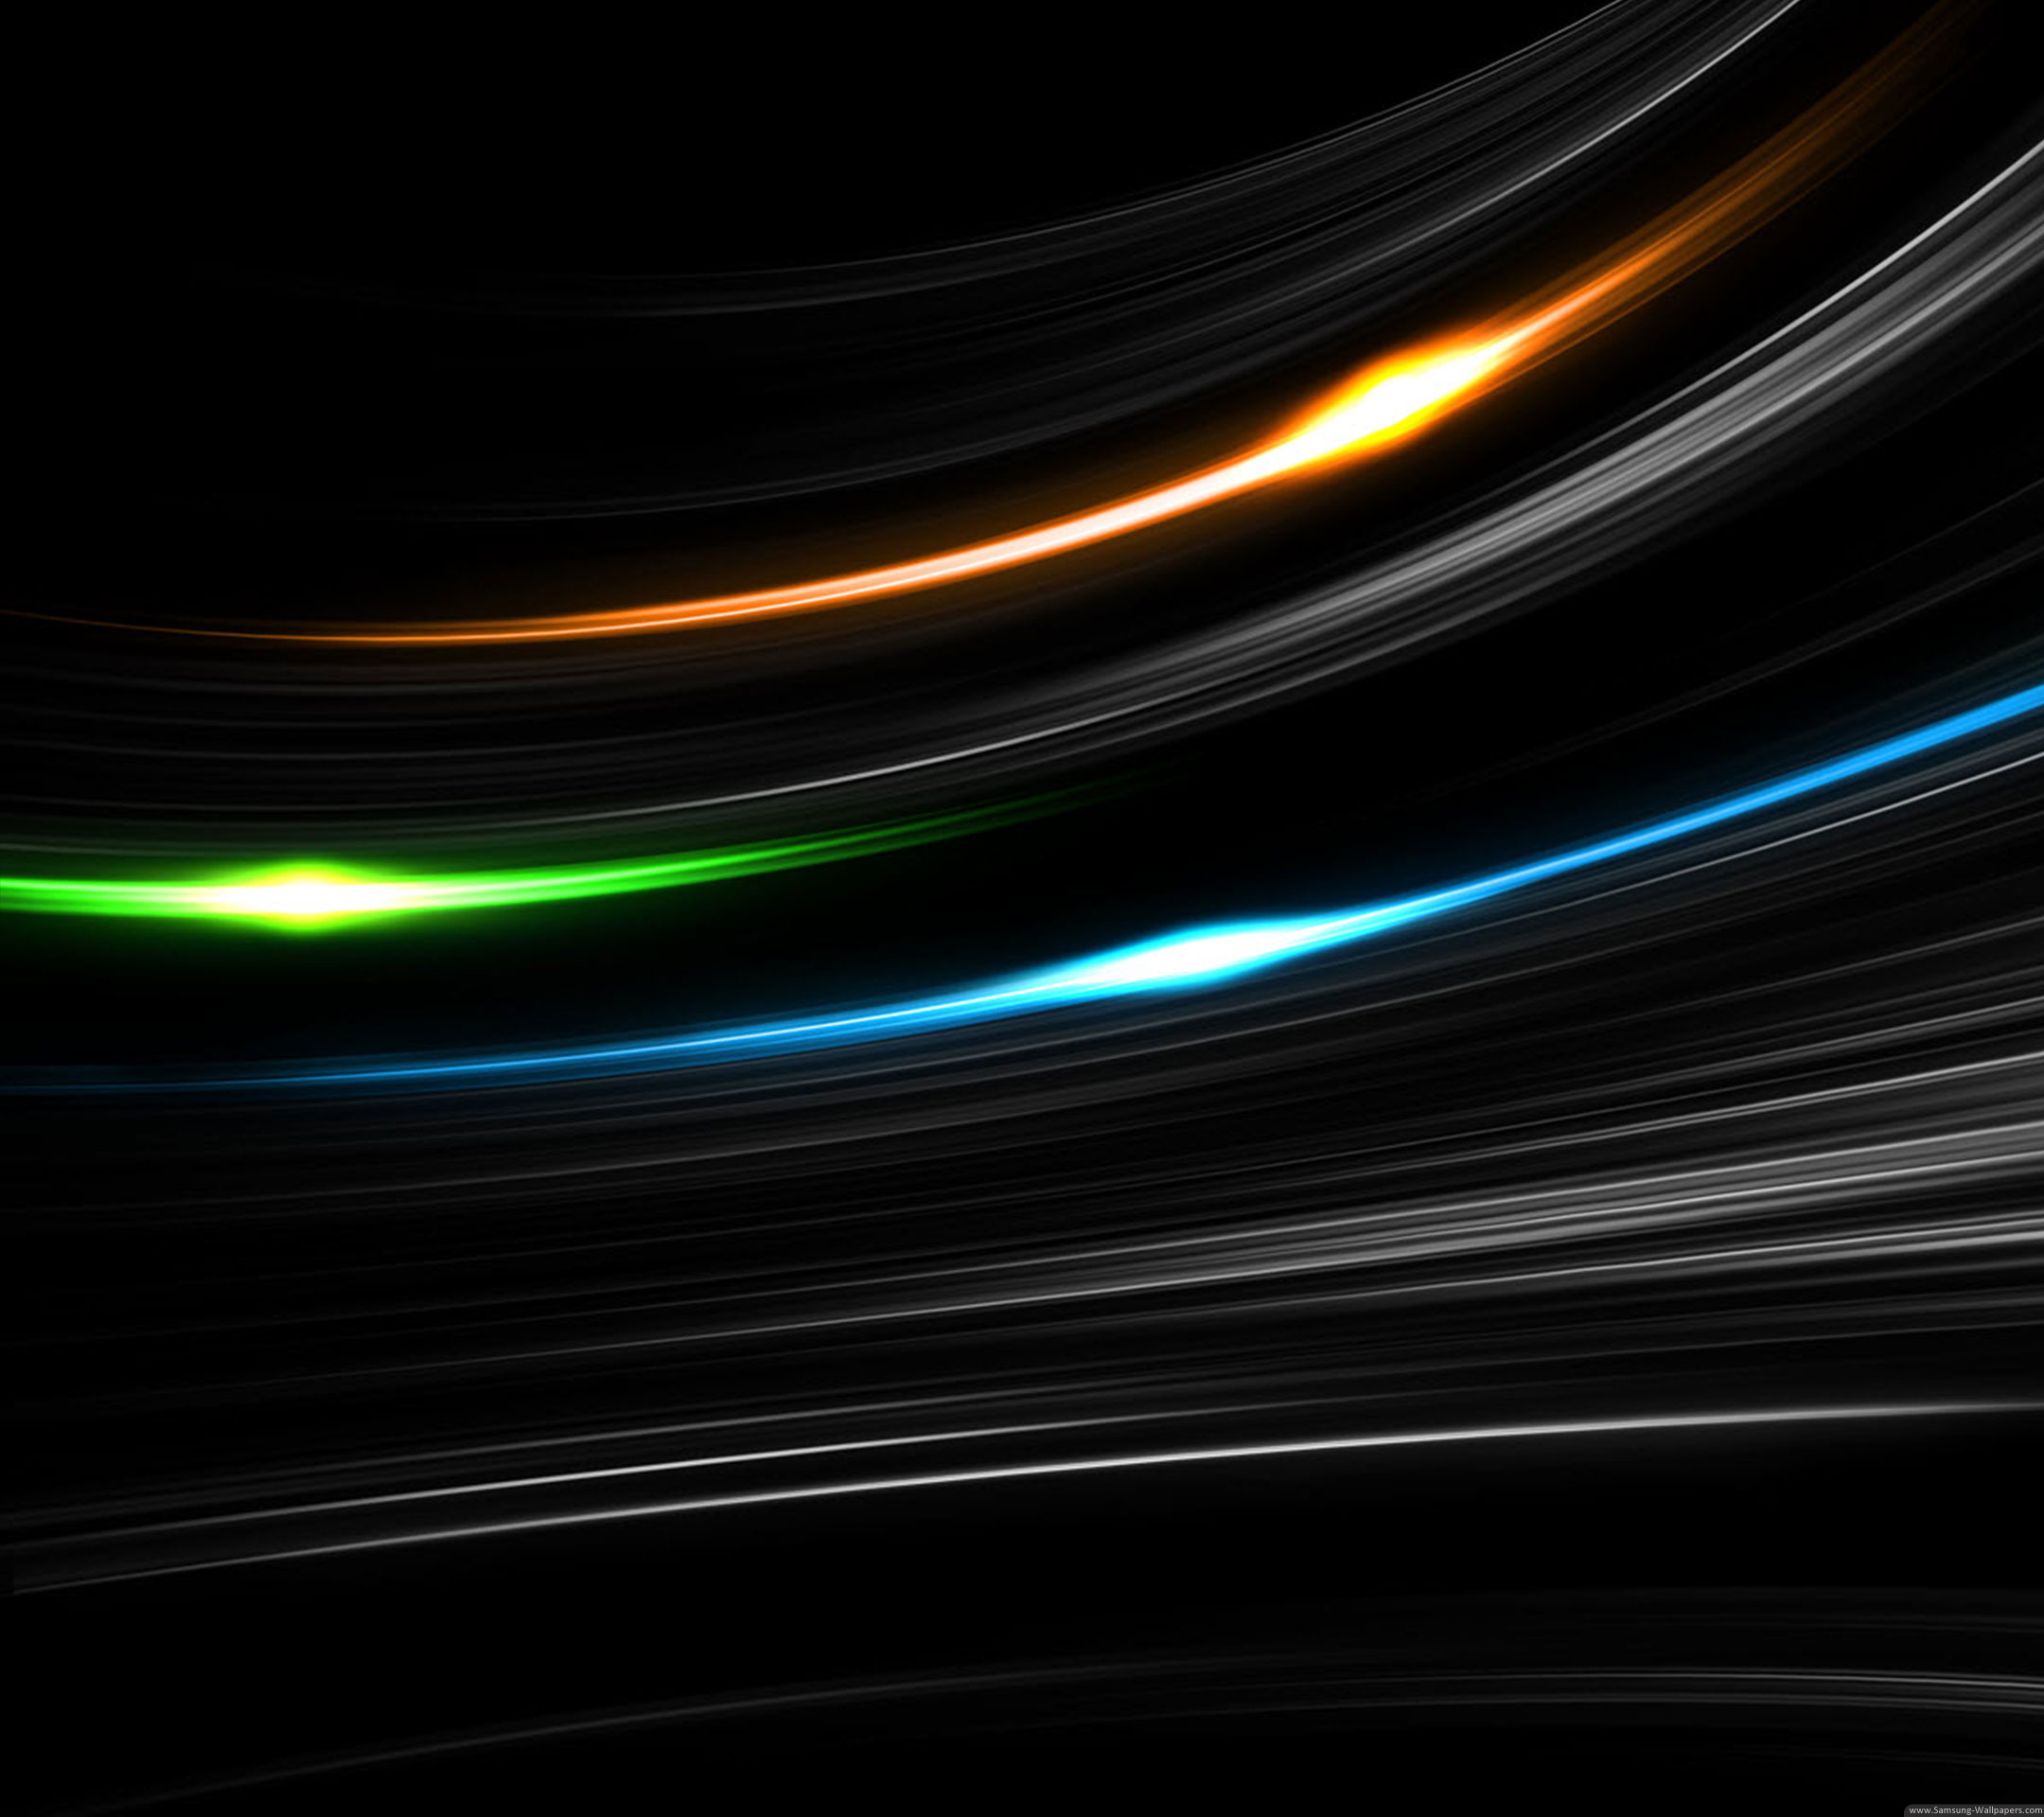 Samsung Black Wallpaper Hd 2160x1920 Download Hd Wallpaper Wallpapertip